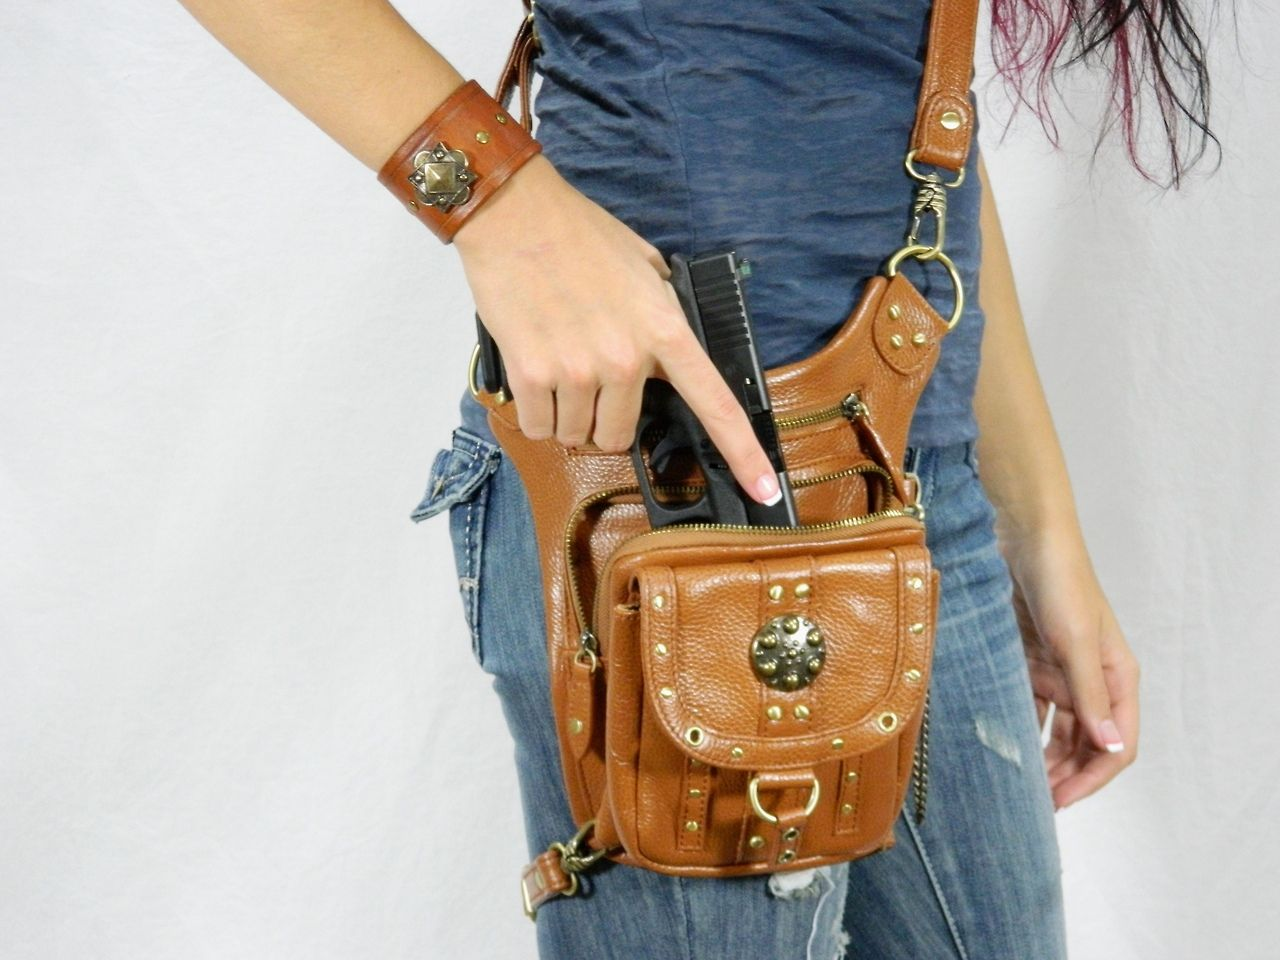 An Adjule Purse With A Gun Holster So You Can Wear It As Handbag Thigh Shoulder Messenger Bag Backpack Pack